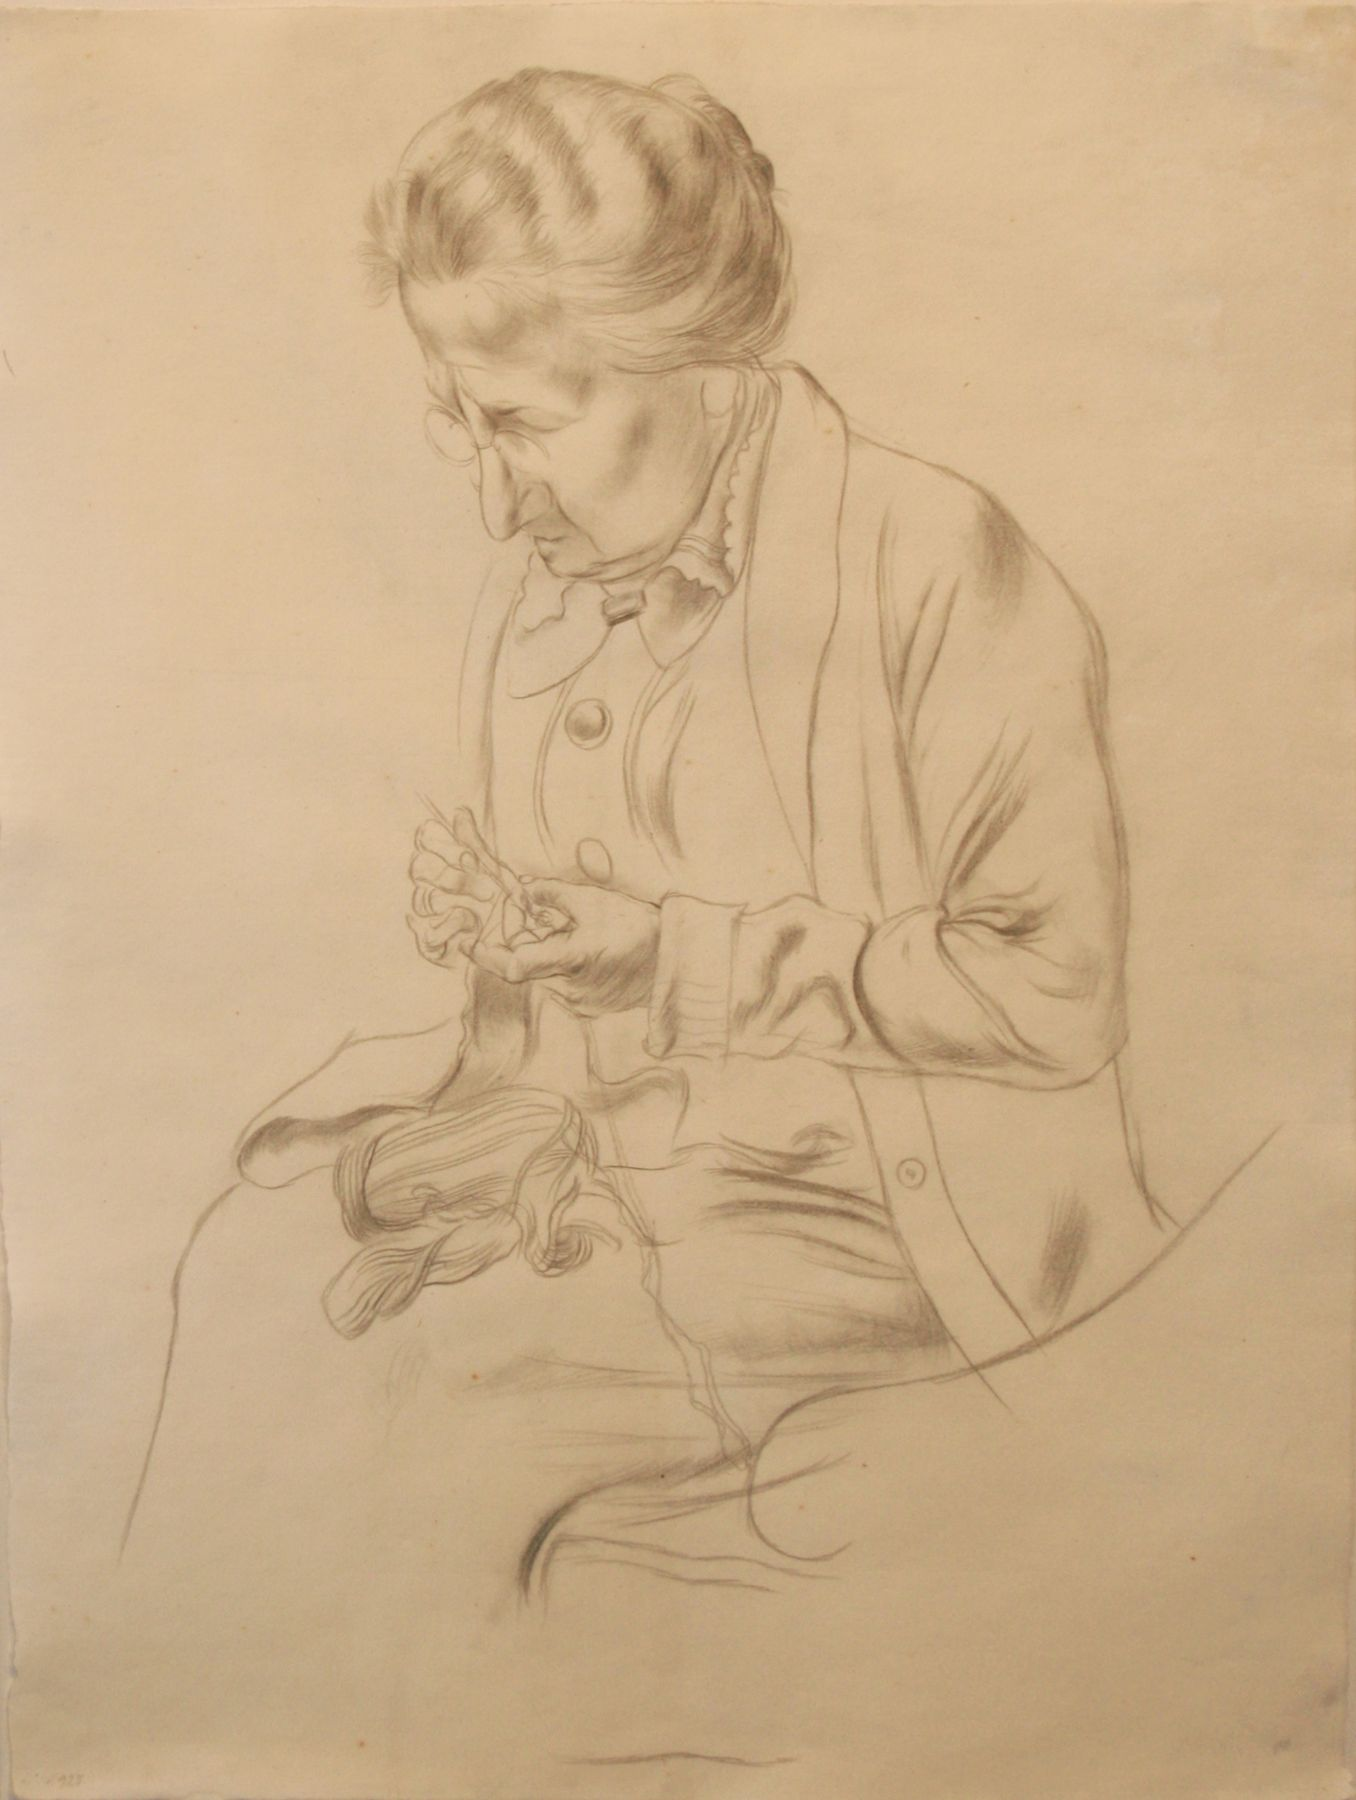 George Grosz, Mother Grosz, 1925, pencil on paper, 23 3/4 x 18 3/8 inches